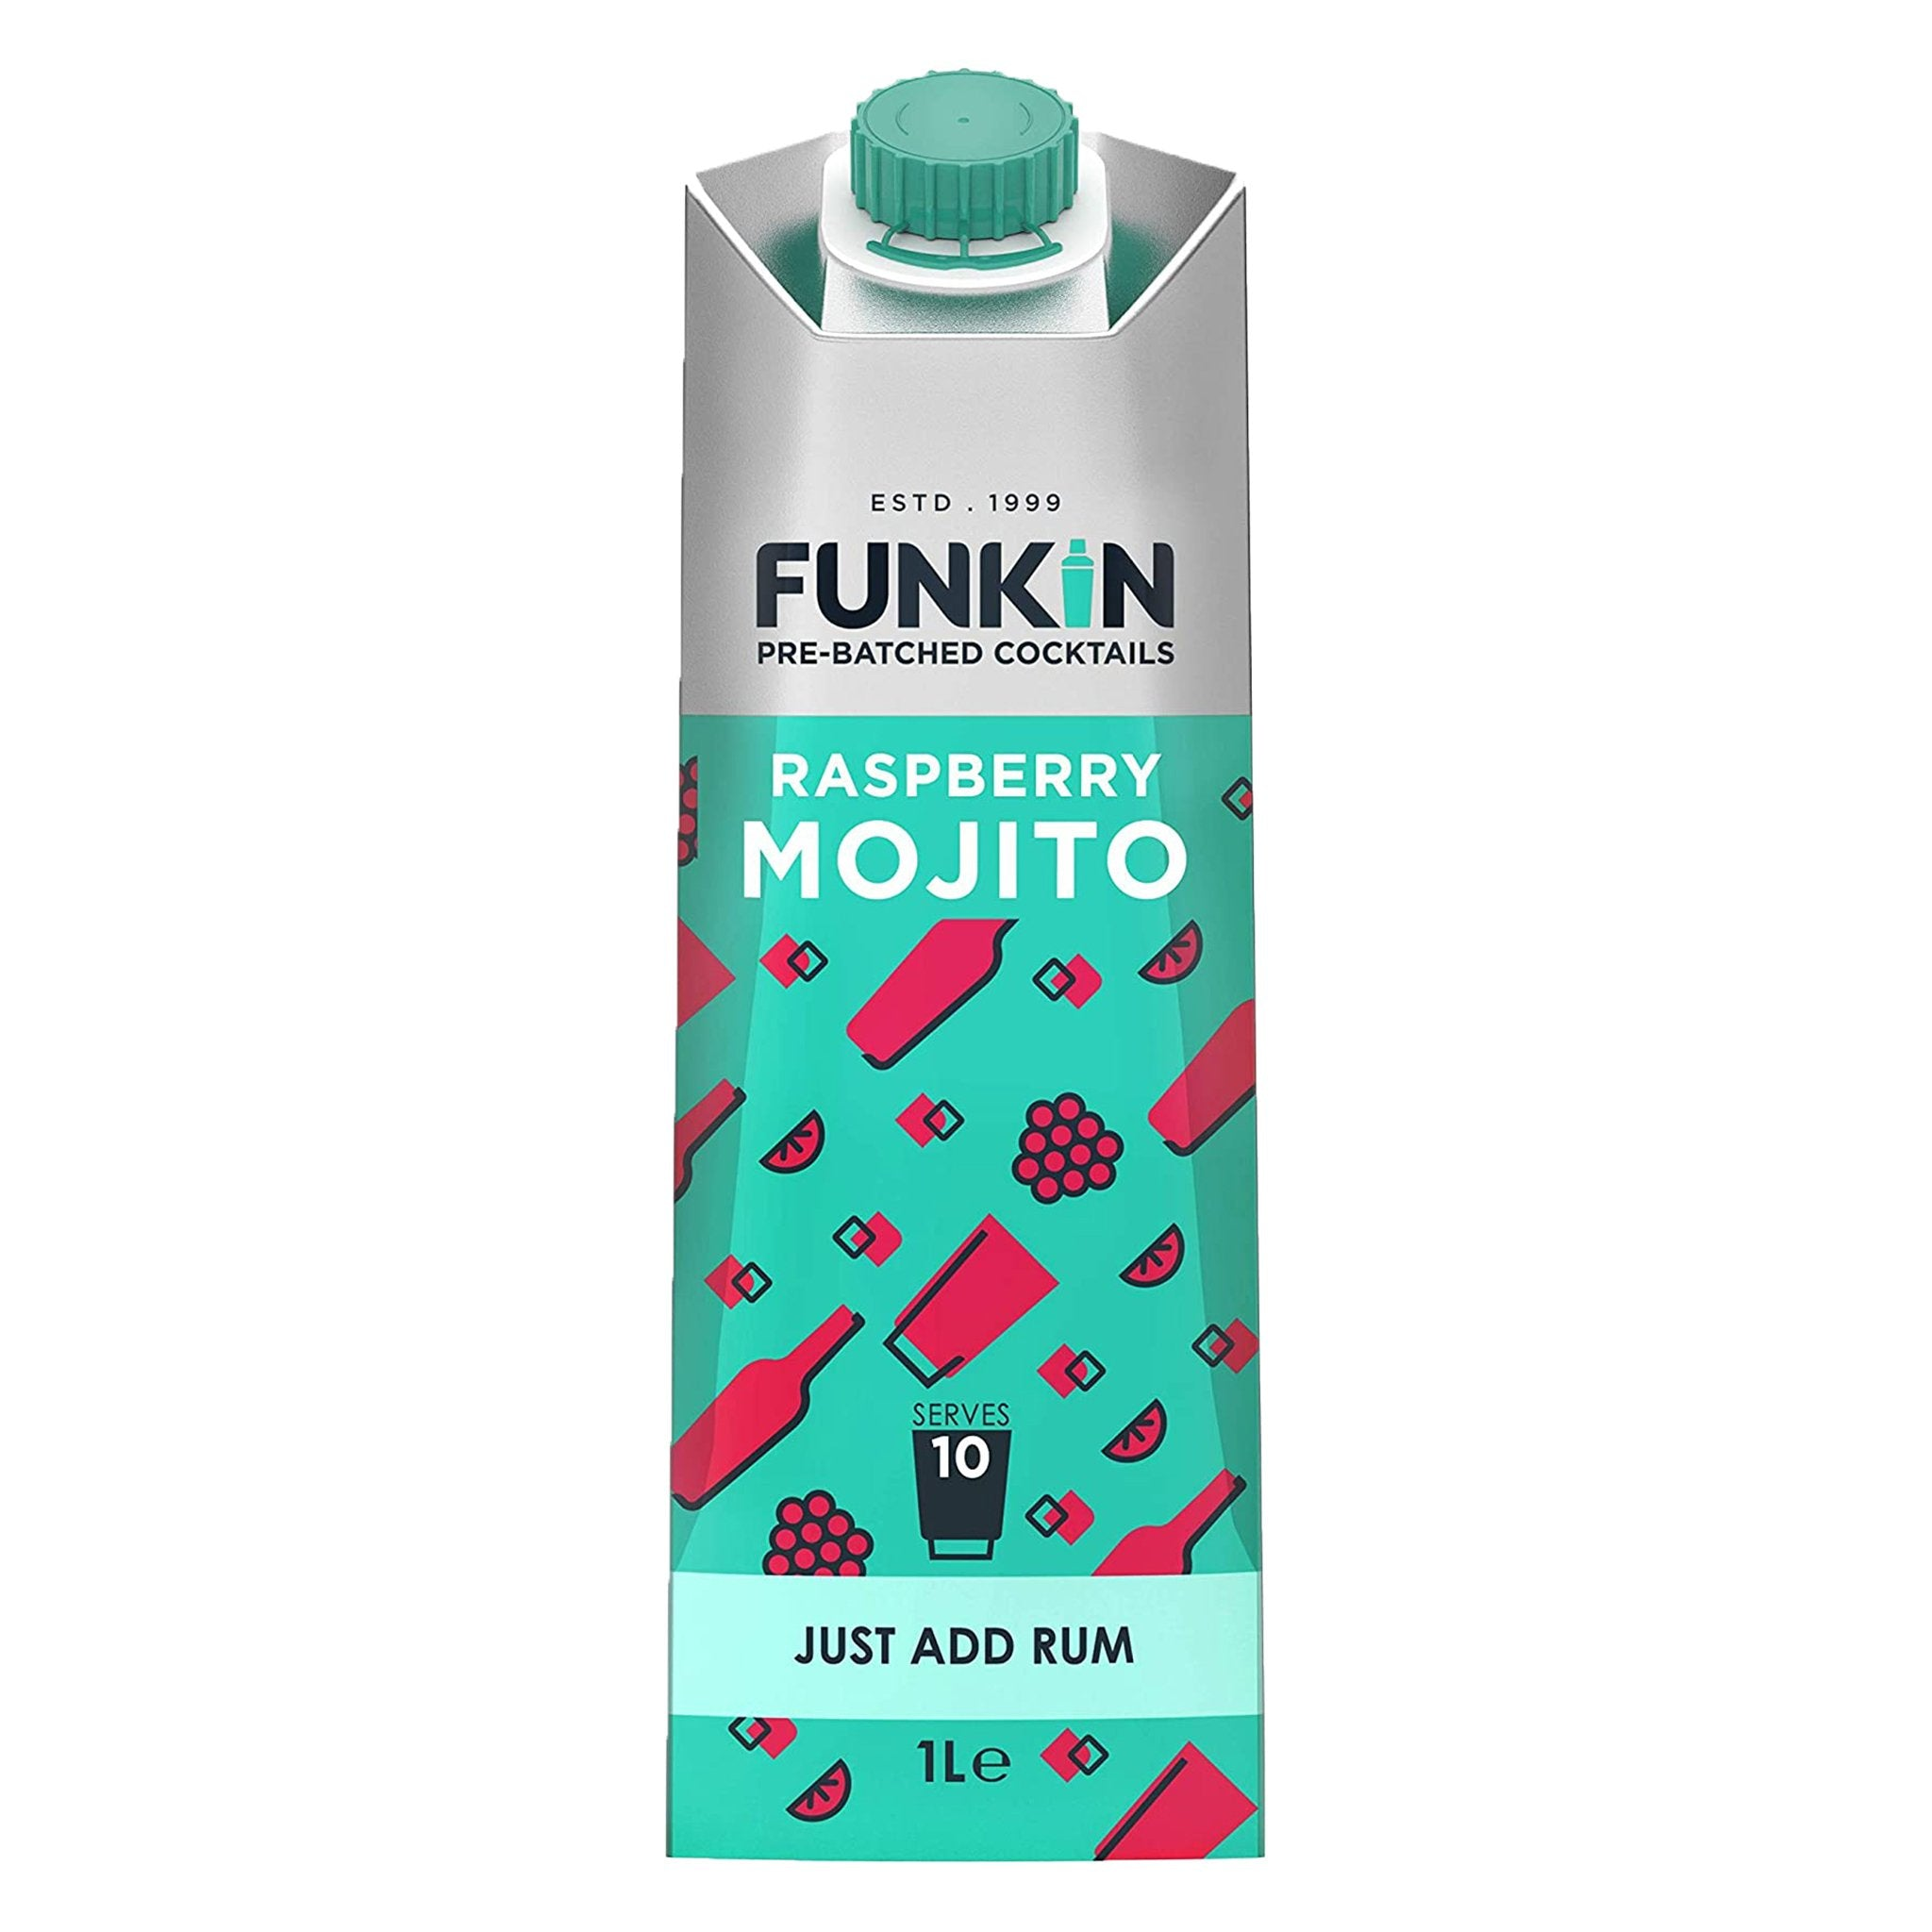 Funki̇n Pre-Batched Cocktails Raspberry Mojito 1L, Cocktail Mixes by Drinks Shop